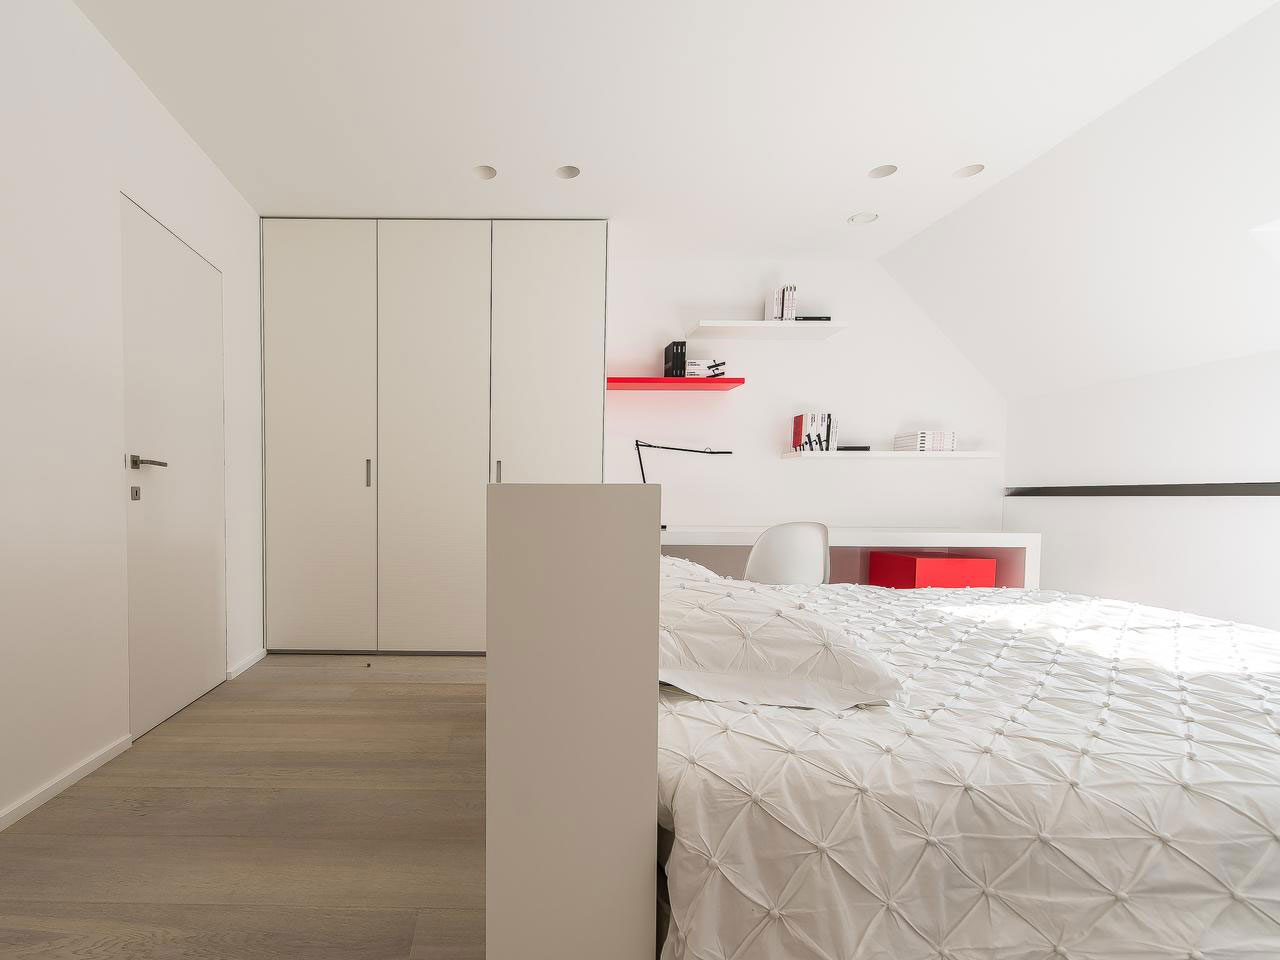 White Bedroom, House Renovation in Sint-Genesius-Rode, Belgium